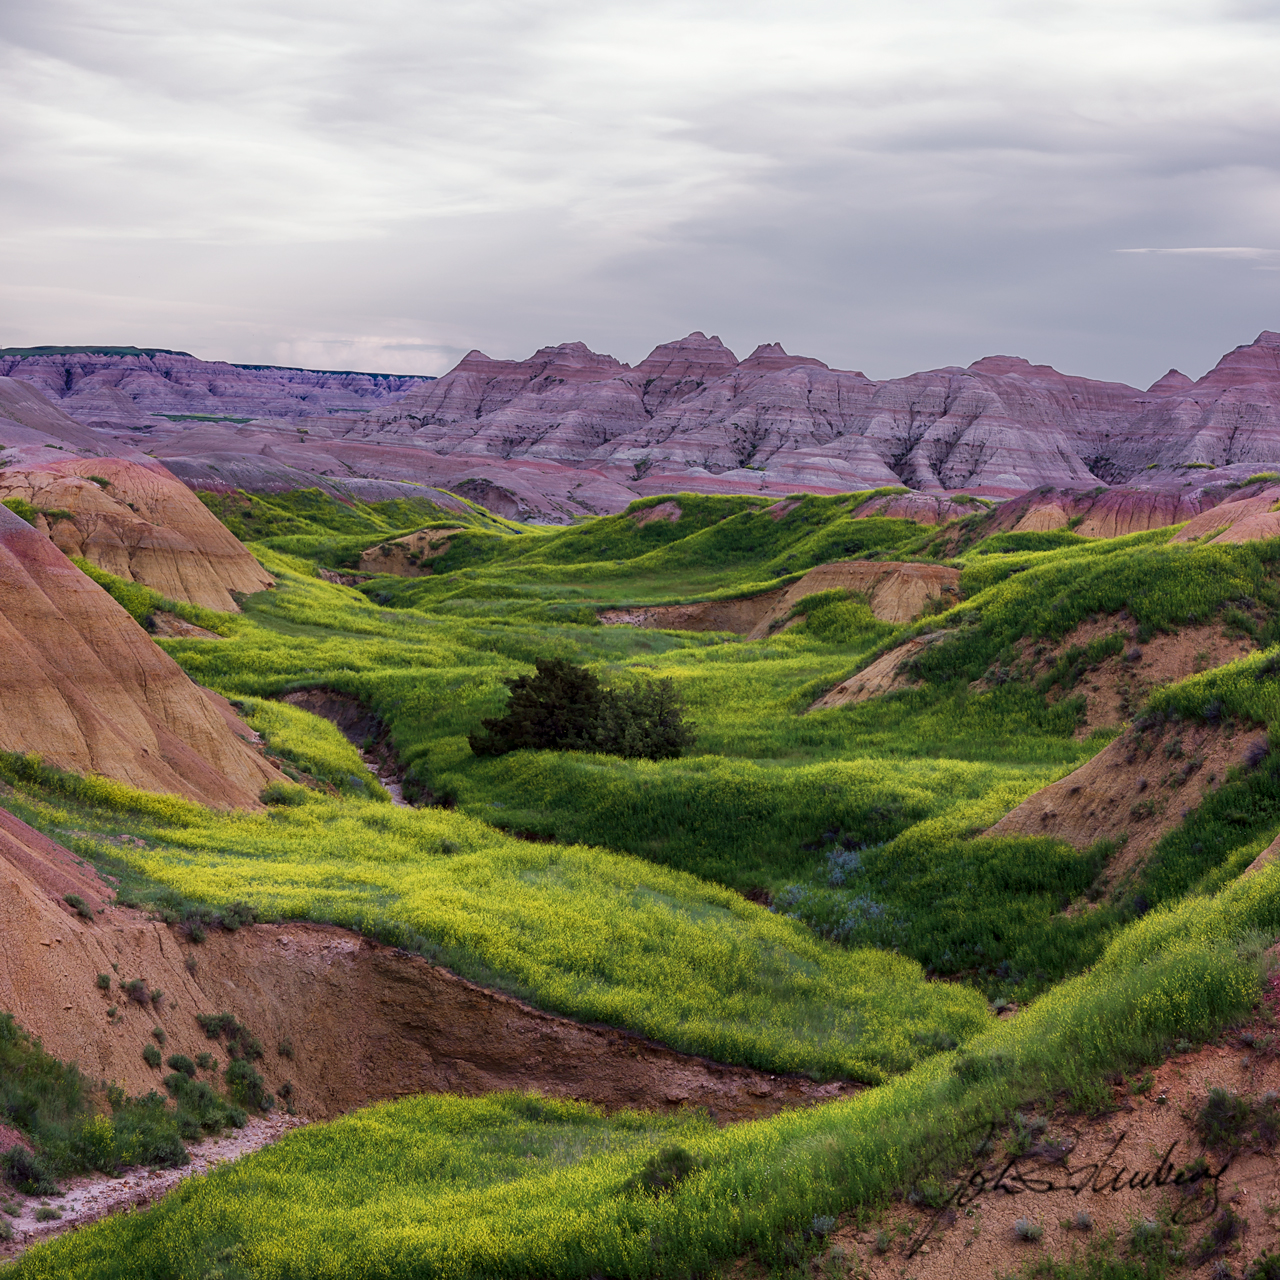 Lush Spring Growth in the Badlands